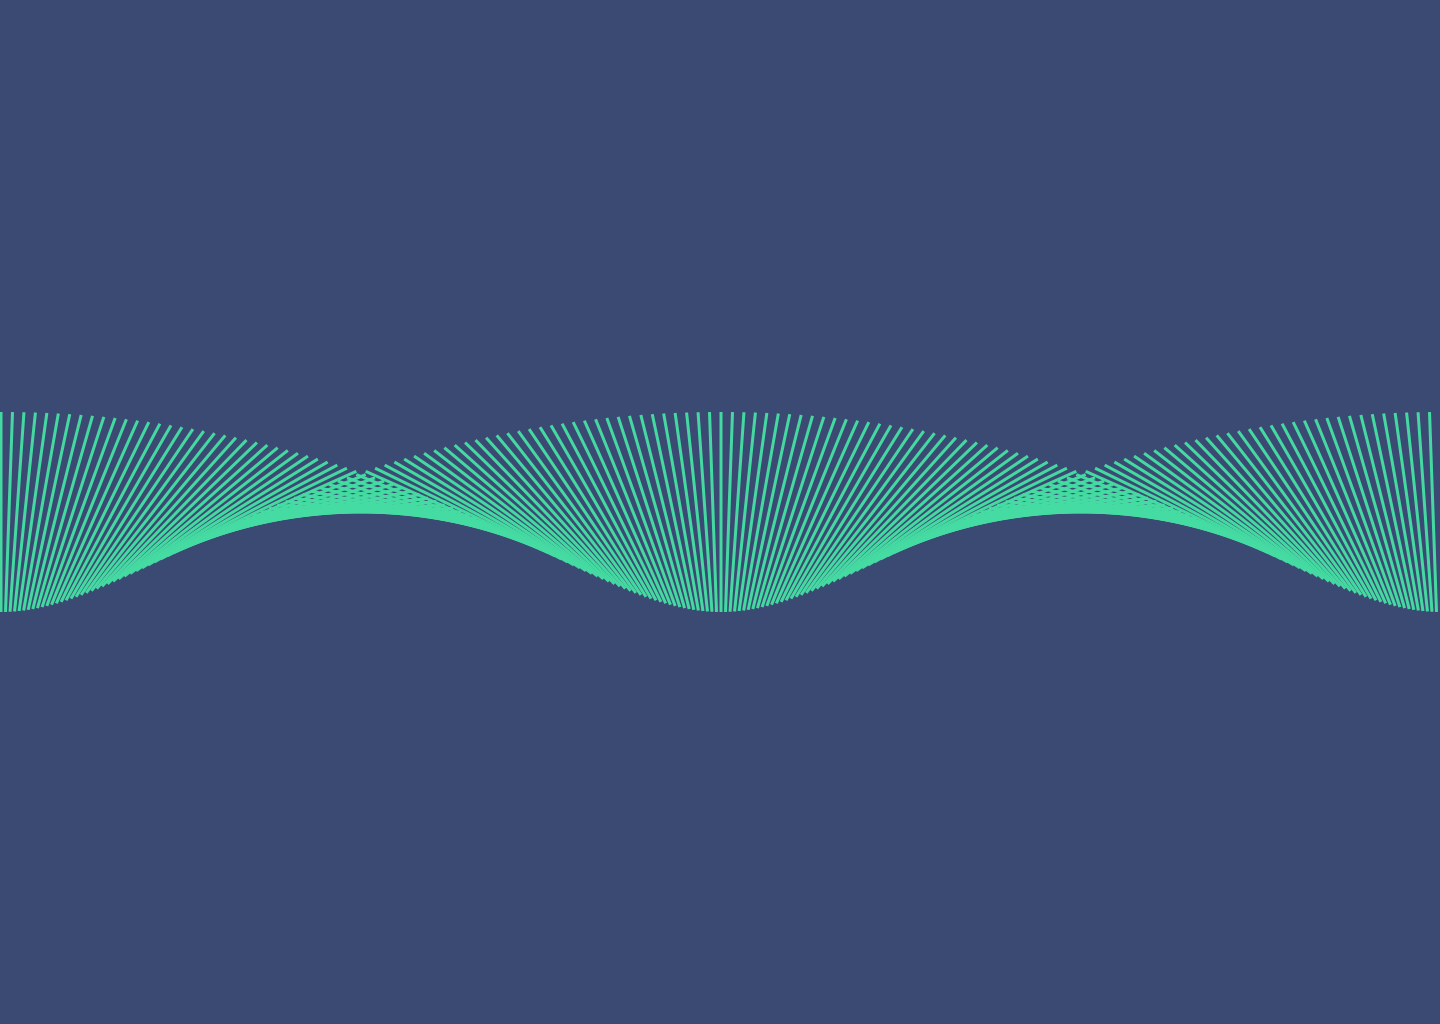 Wave made with Sketch and Looper